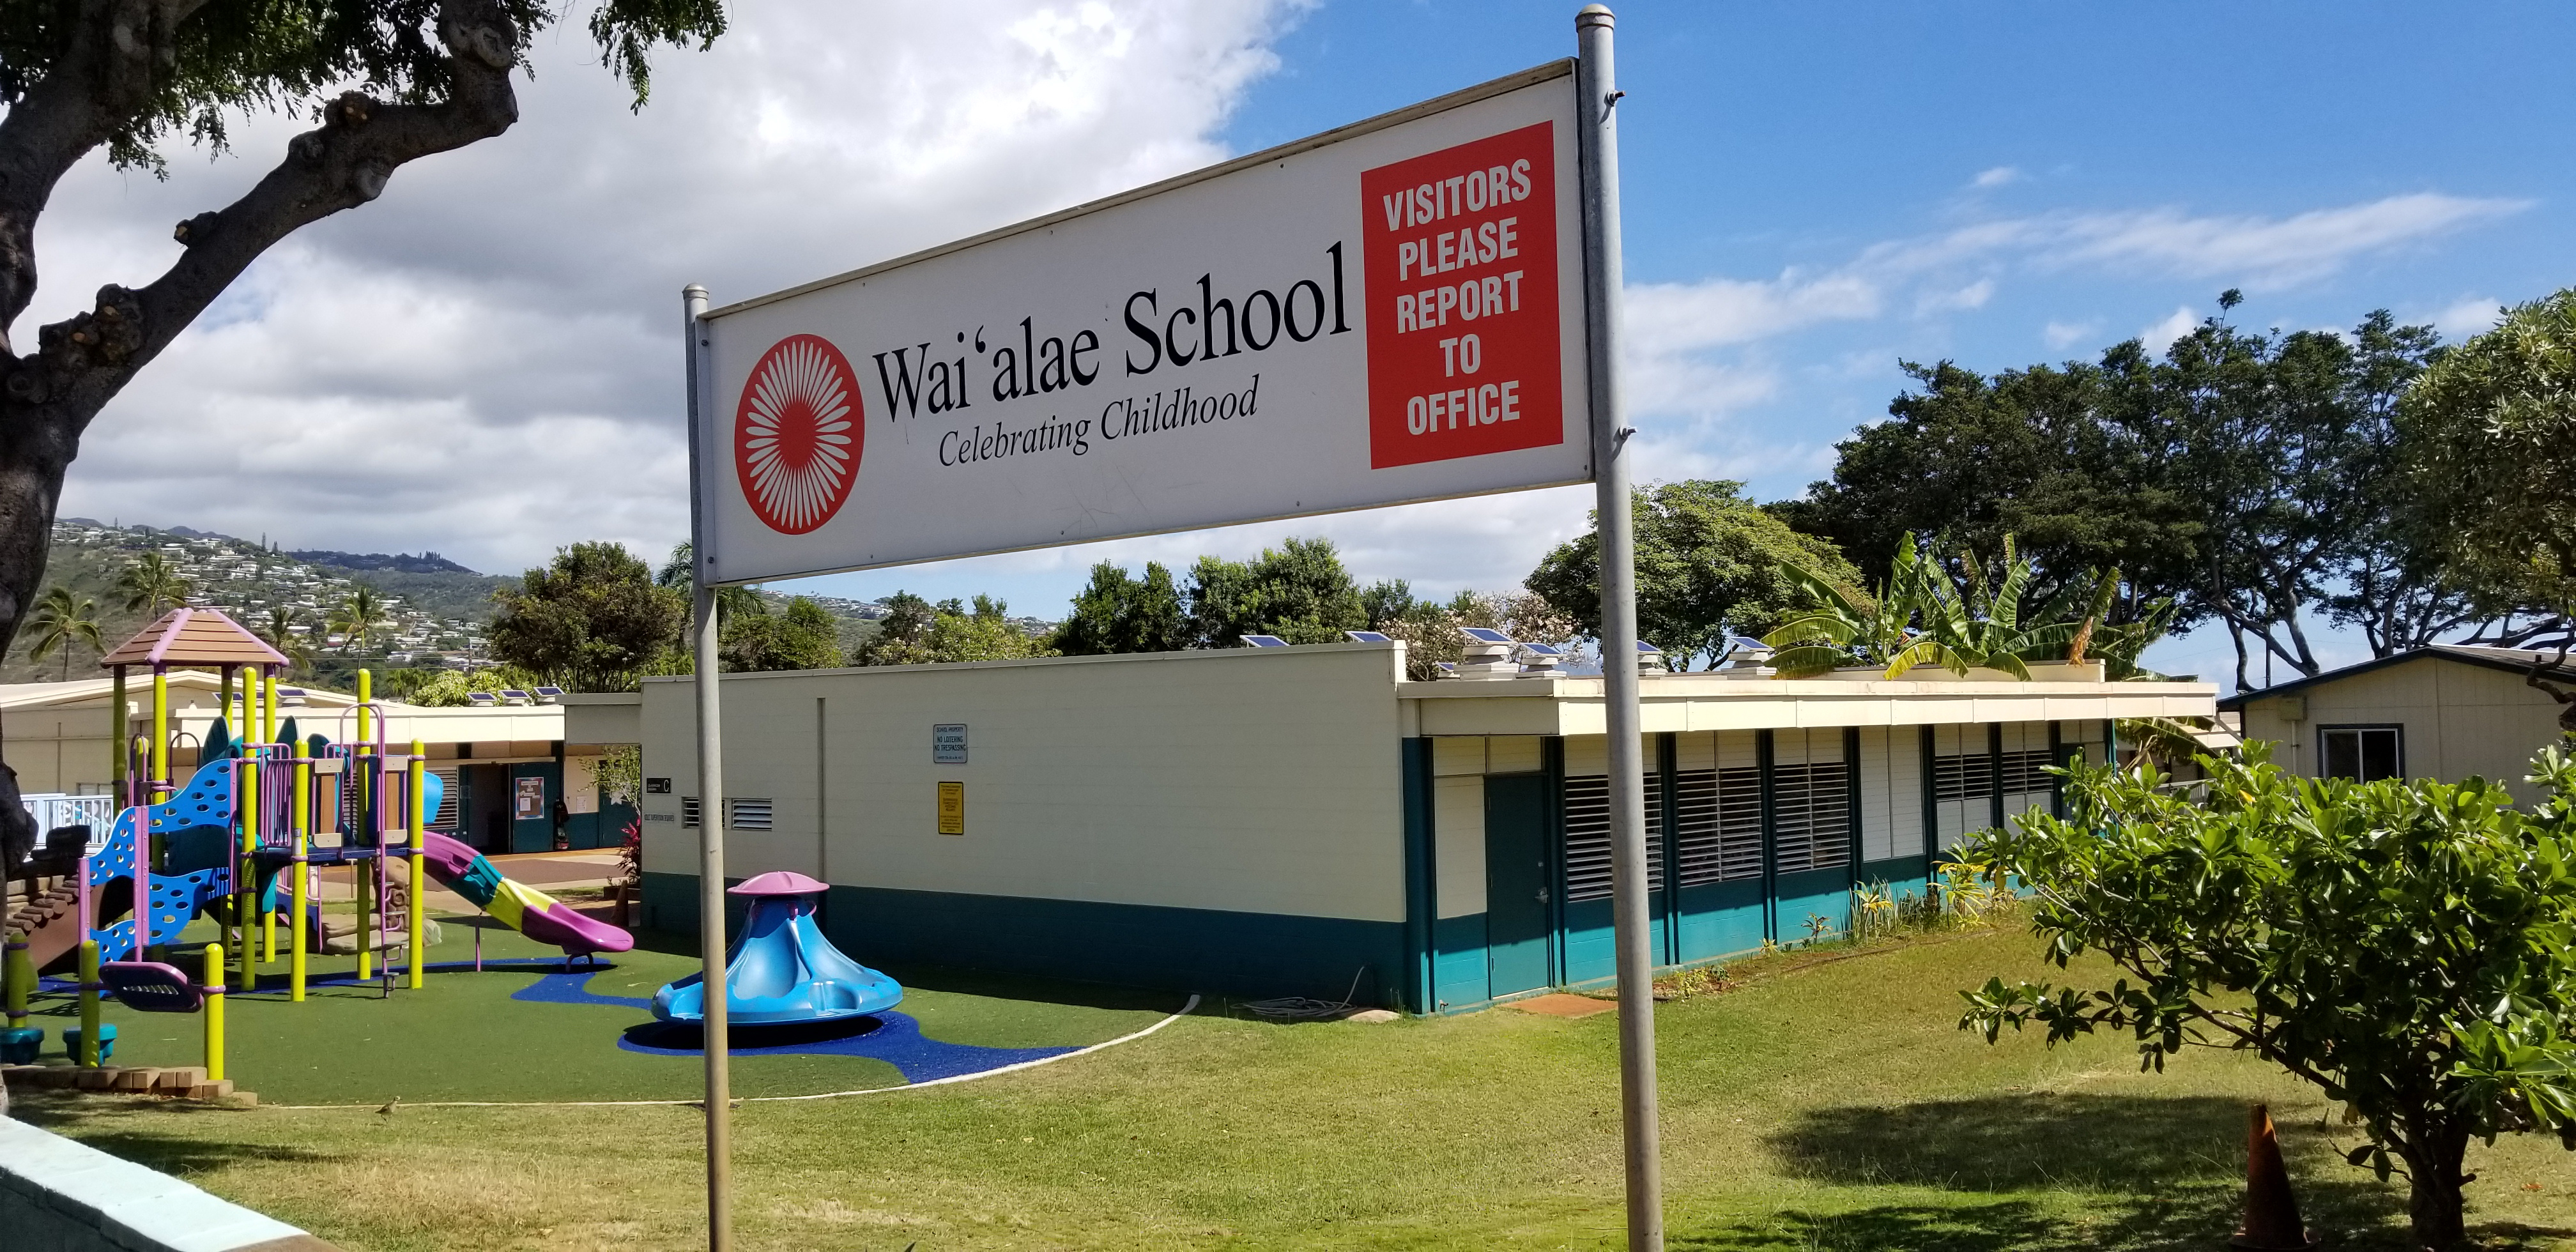 Hawaii School Calendar 2020 2019 2020 Wai'alae School Calendar – UPDATED – Wai'alae Elementary